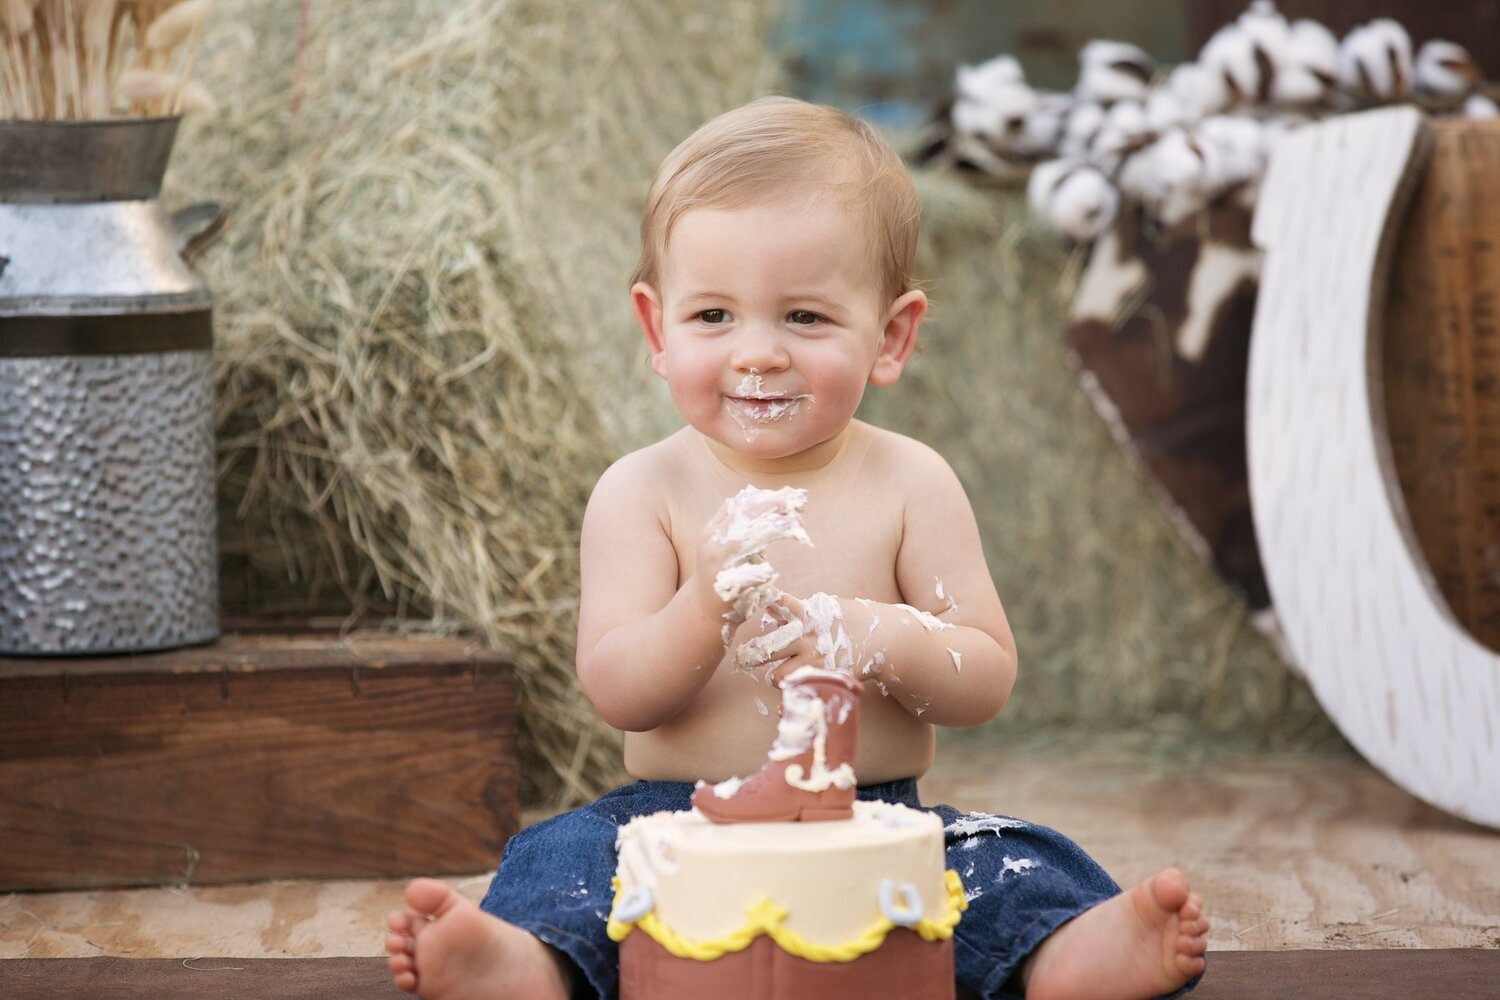 cowboy-cake-smash-san-antonio-texas-lytle-photoshoot.jpg